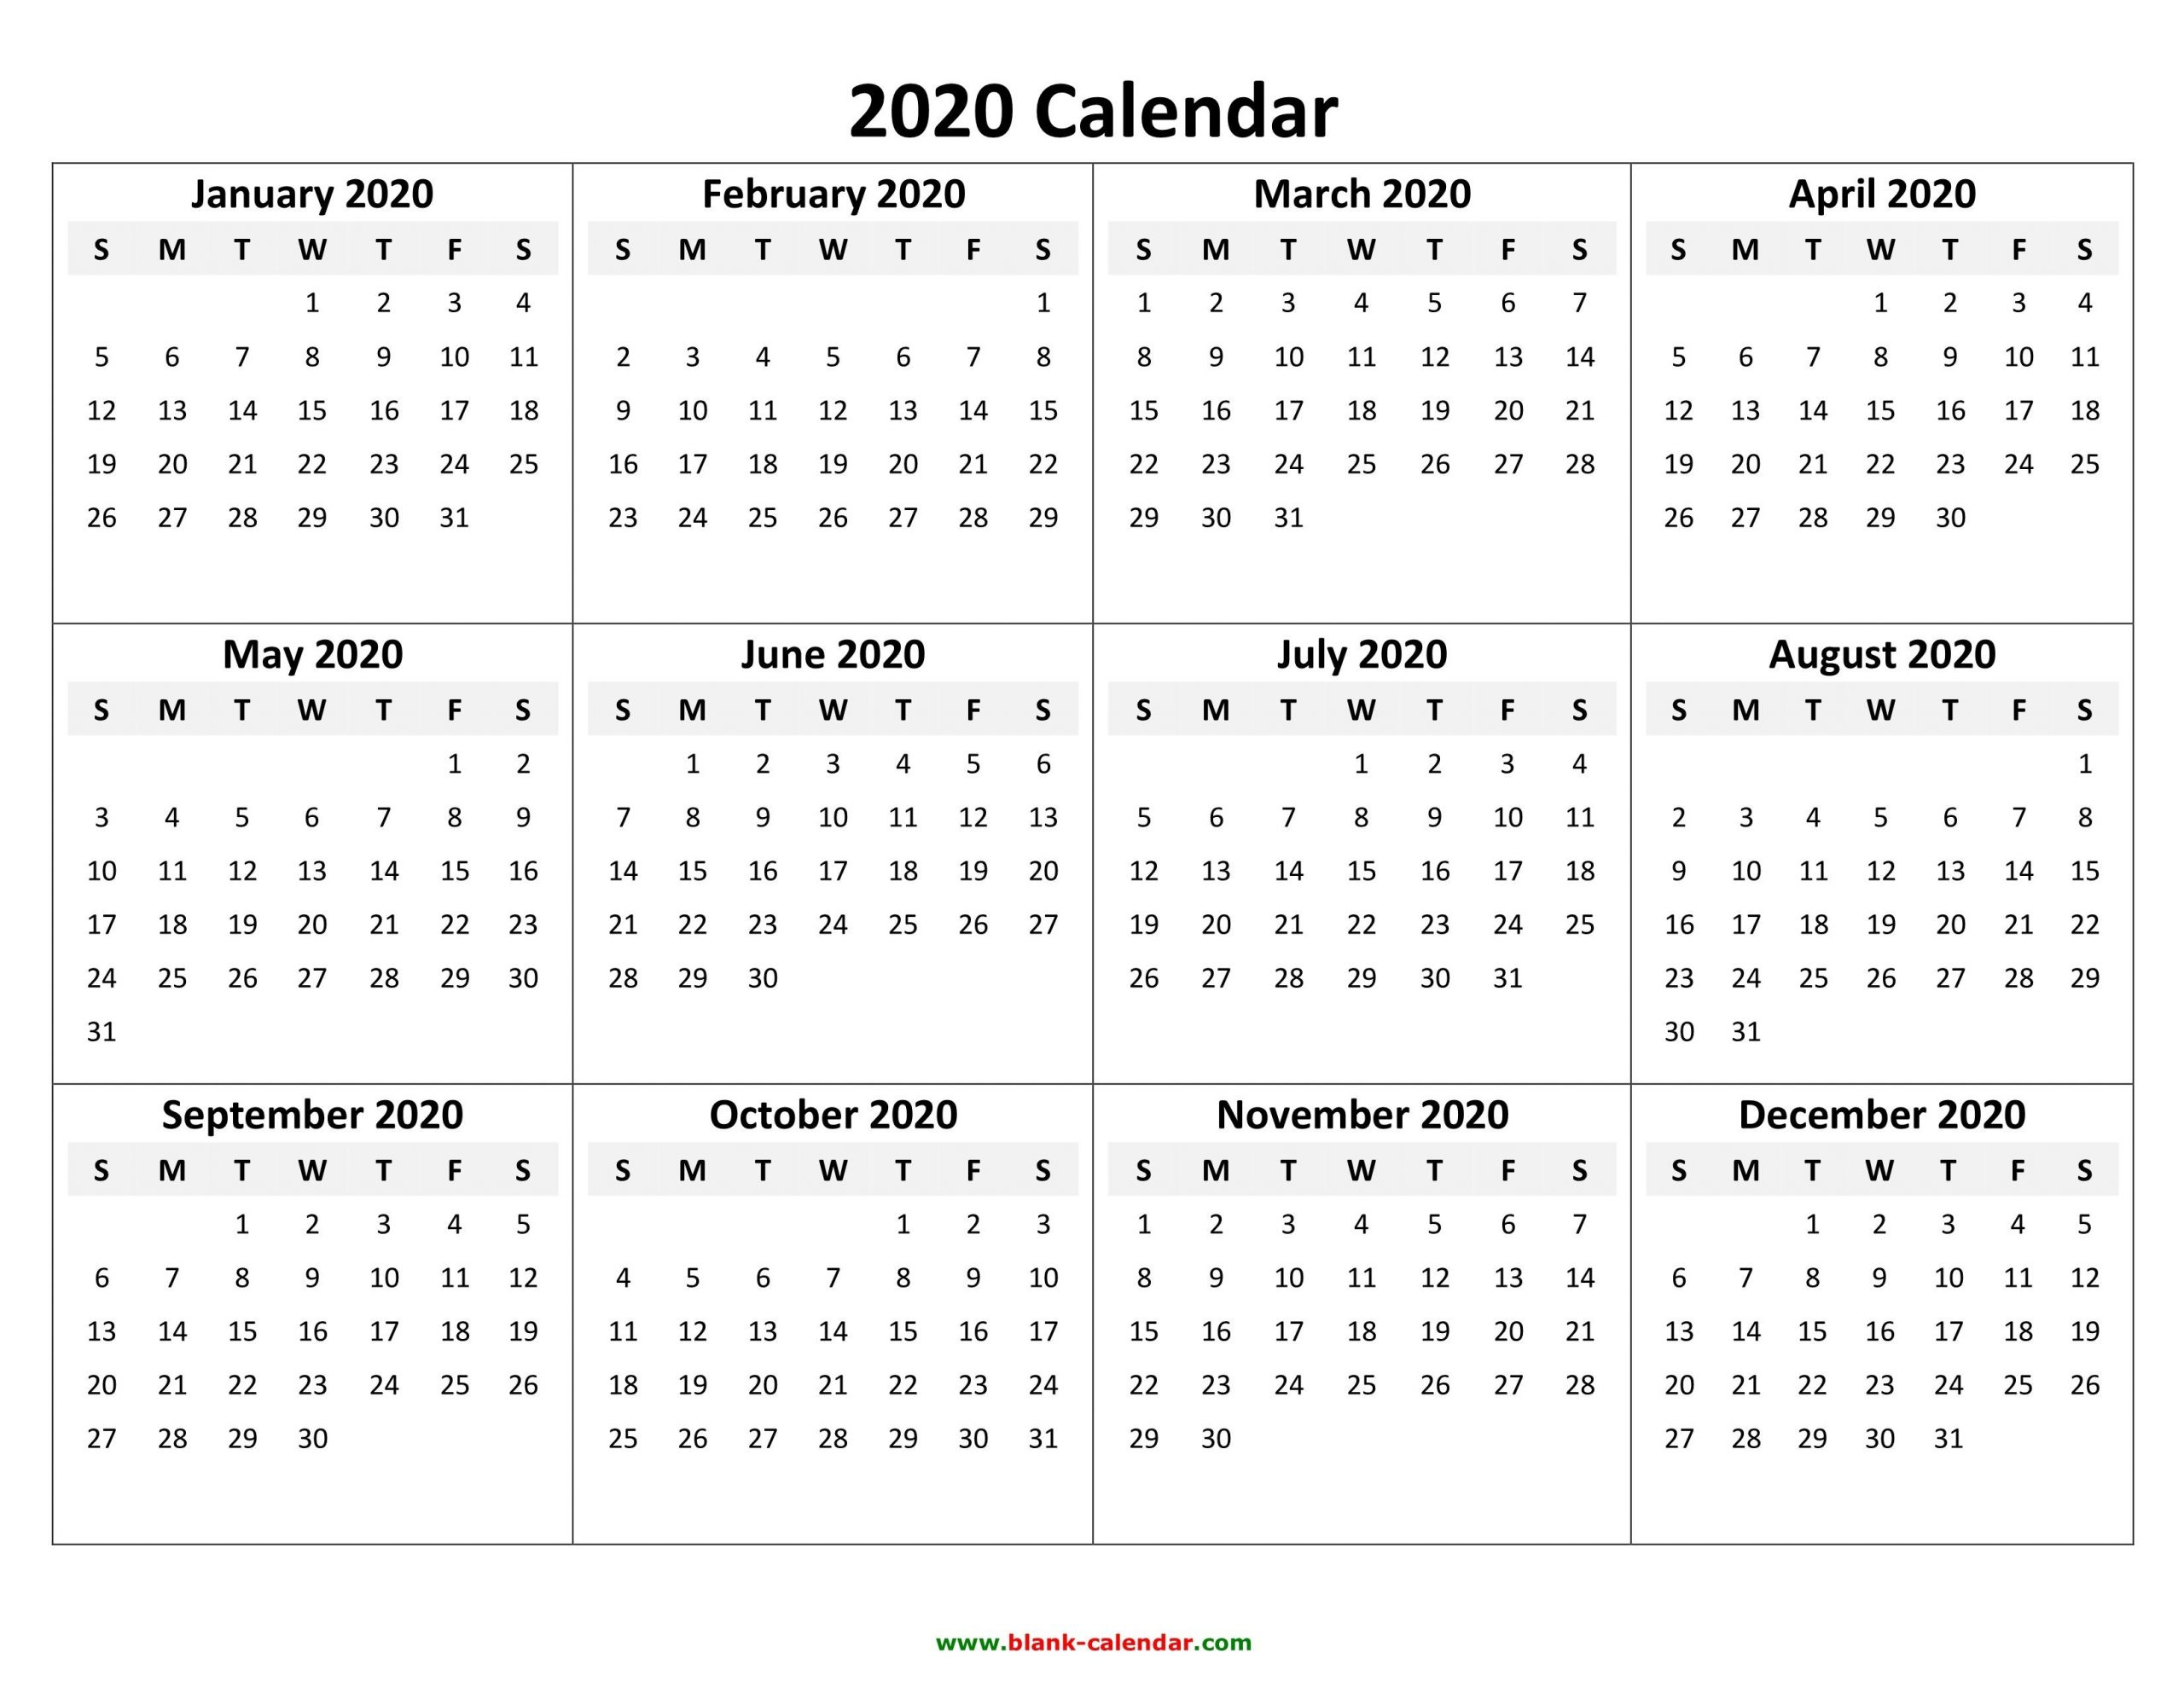 Whole Year Calendar 2020 Printable – Pleasant To Be Able To